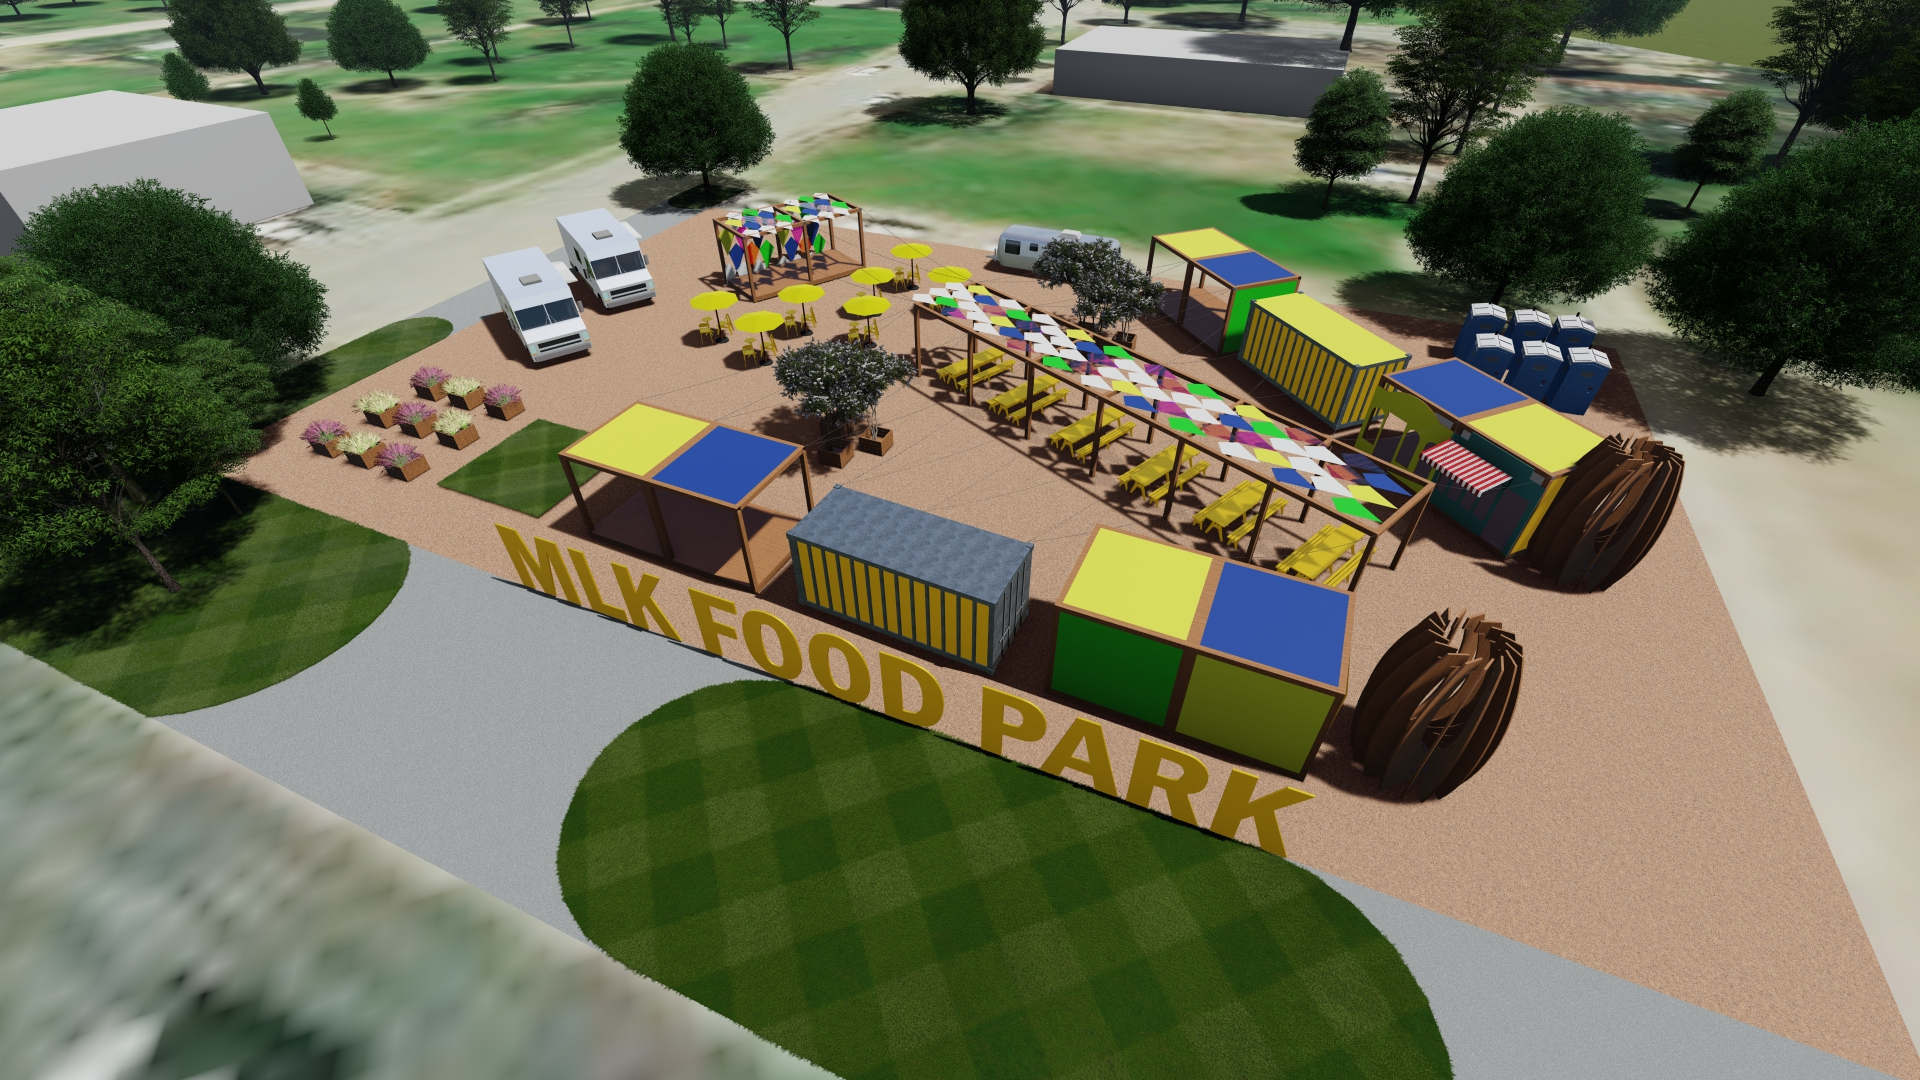 Organizers hope pop-up MLK Food Park becomes permanent in South Dallas